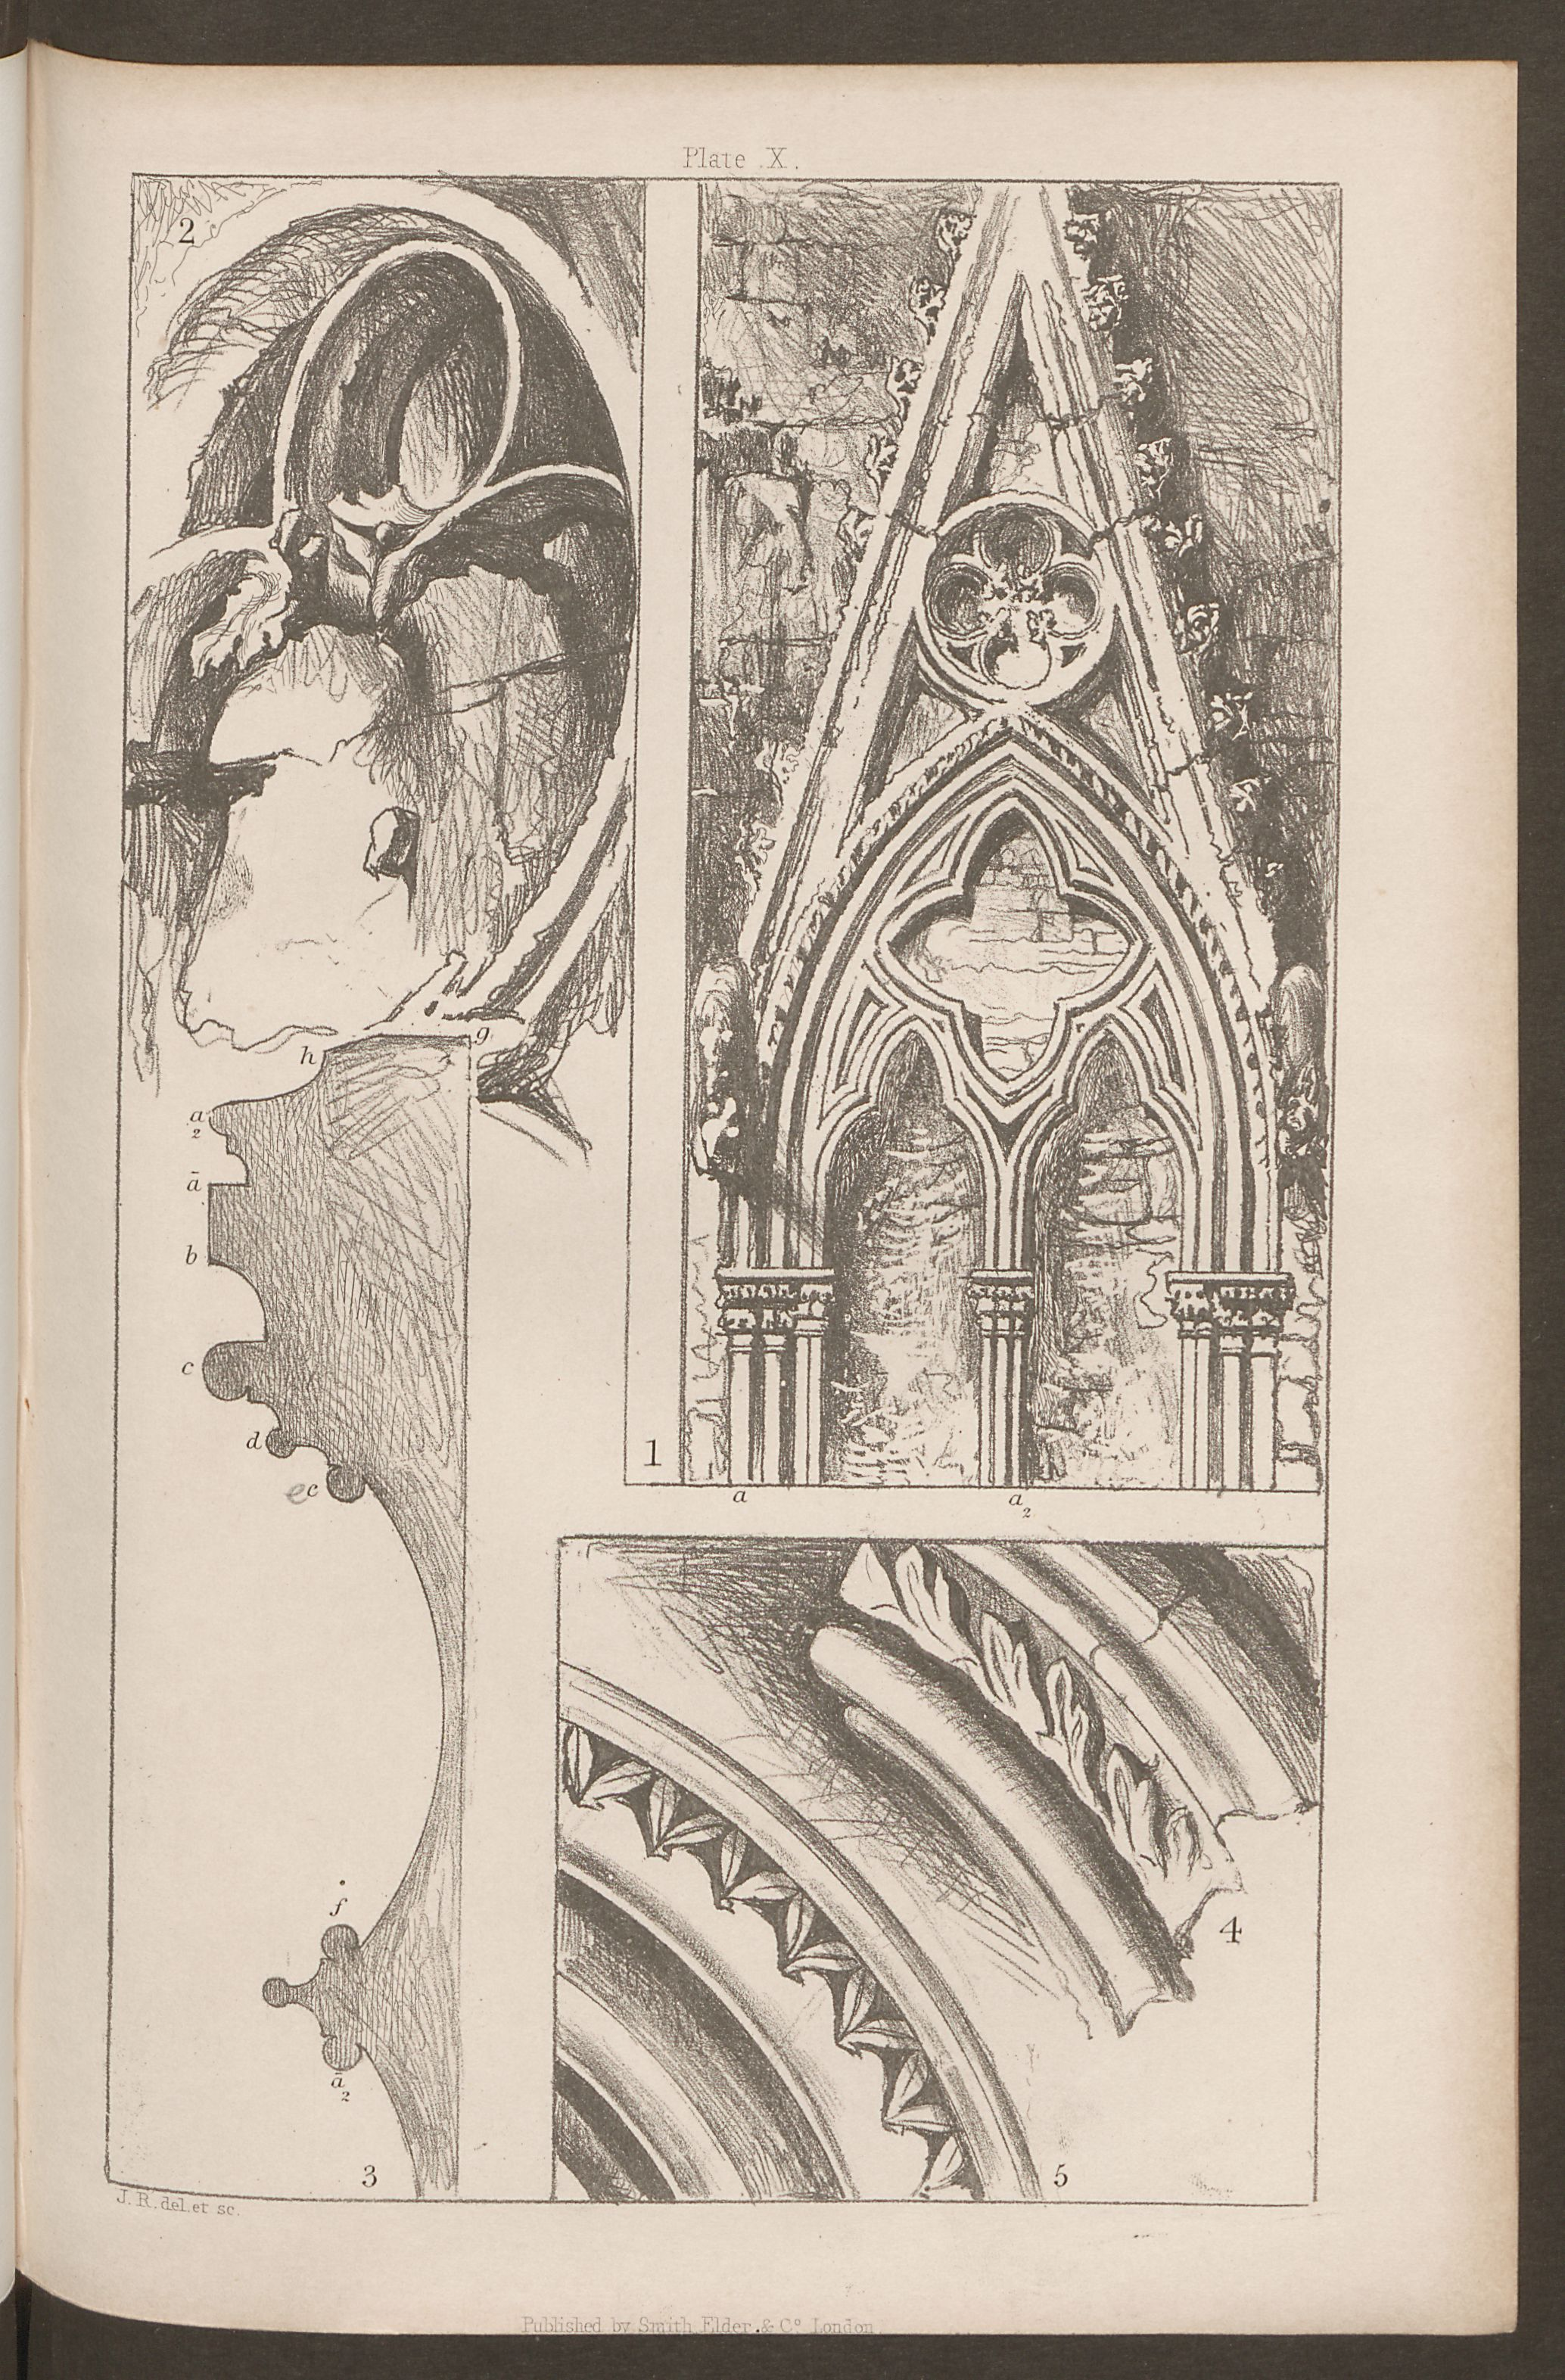 The seven lamps of architecture, by John Ruskin